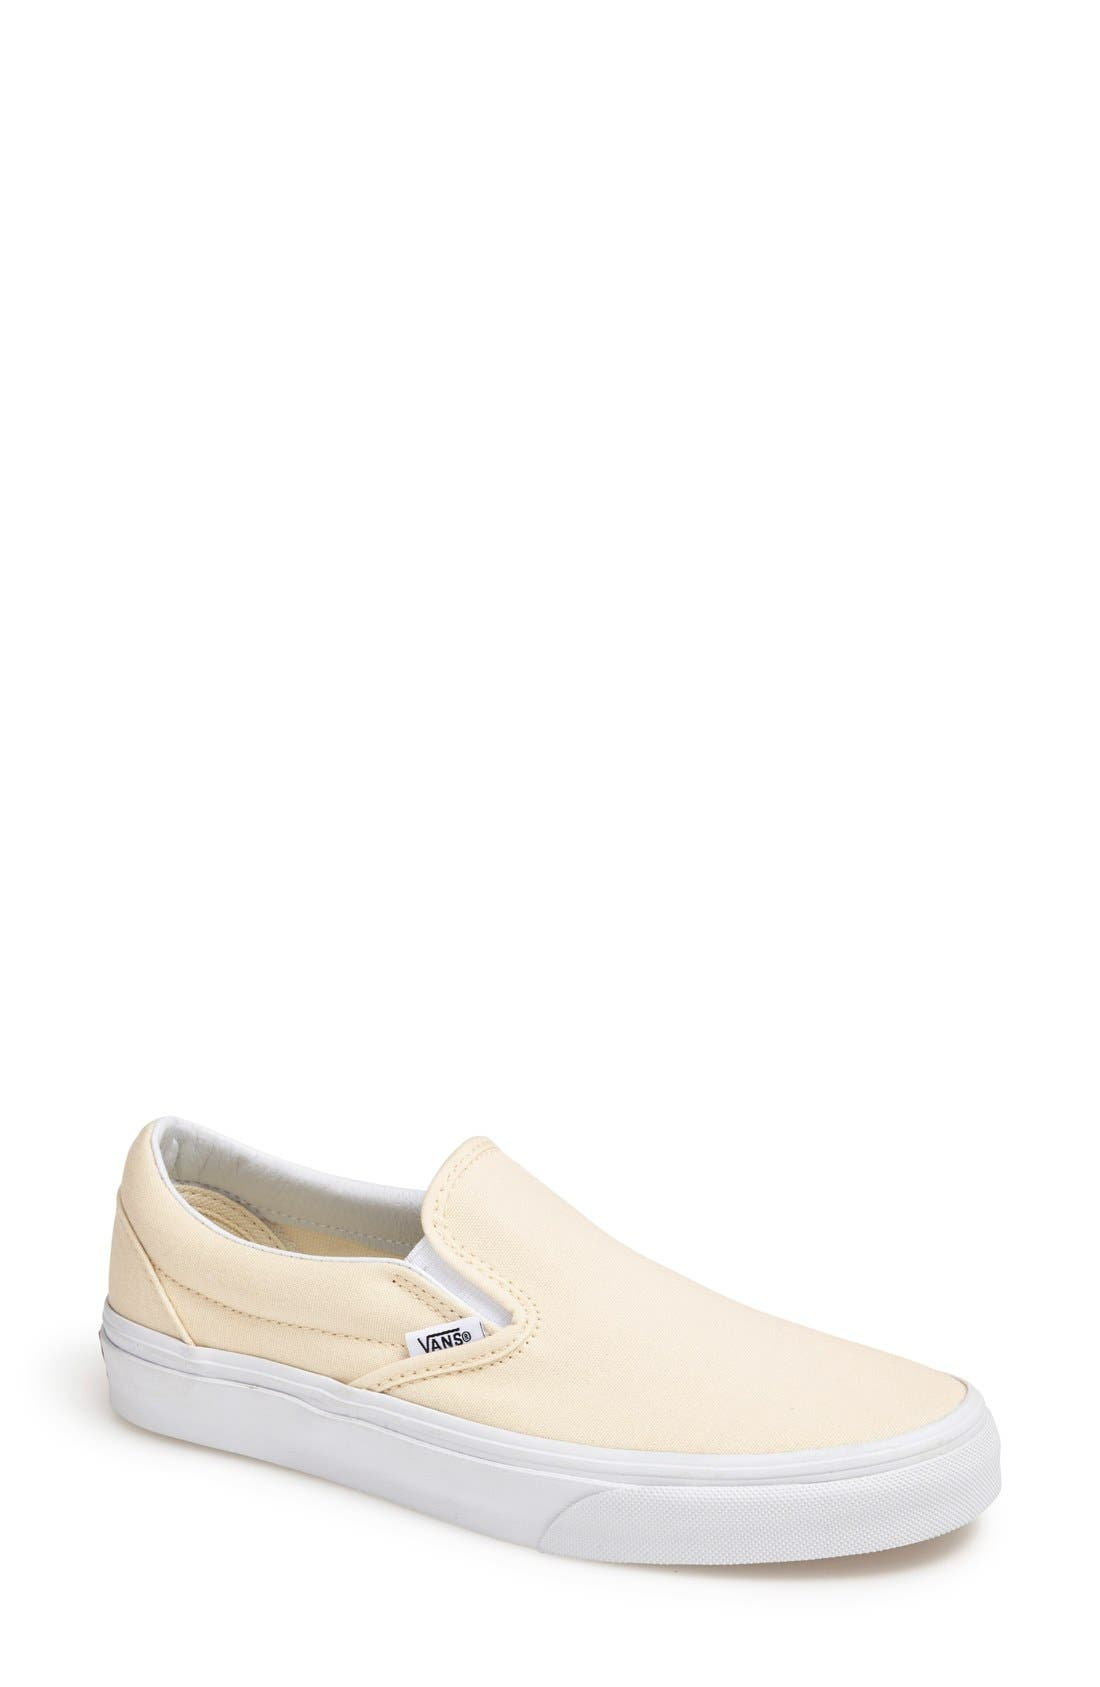 Alternate Image 1 Selected - Vans 'Classic' Slip-On (Women)